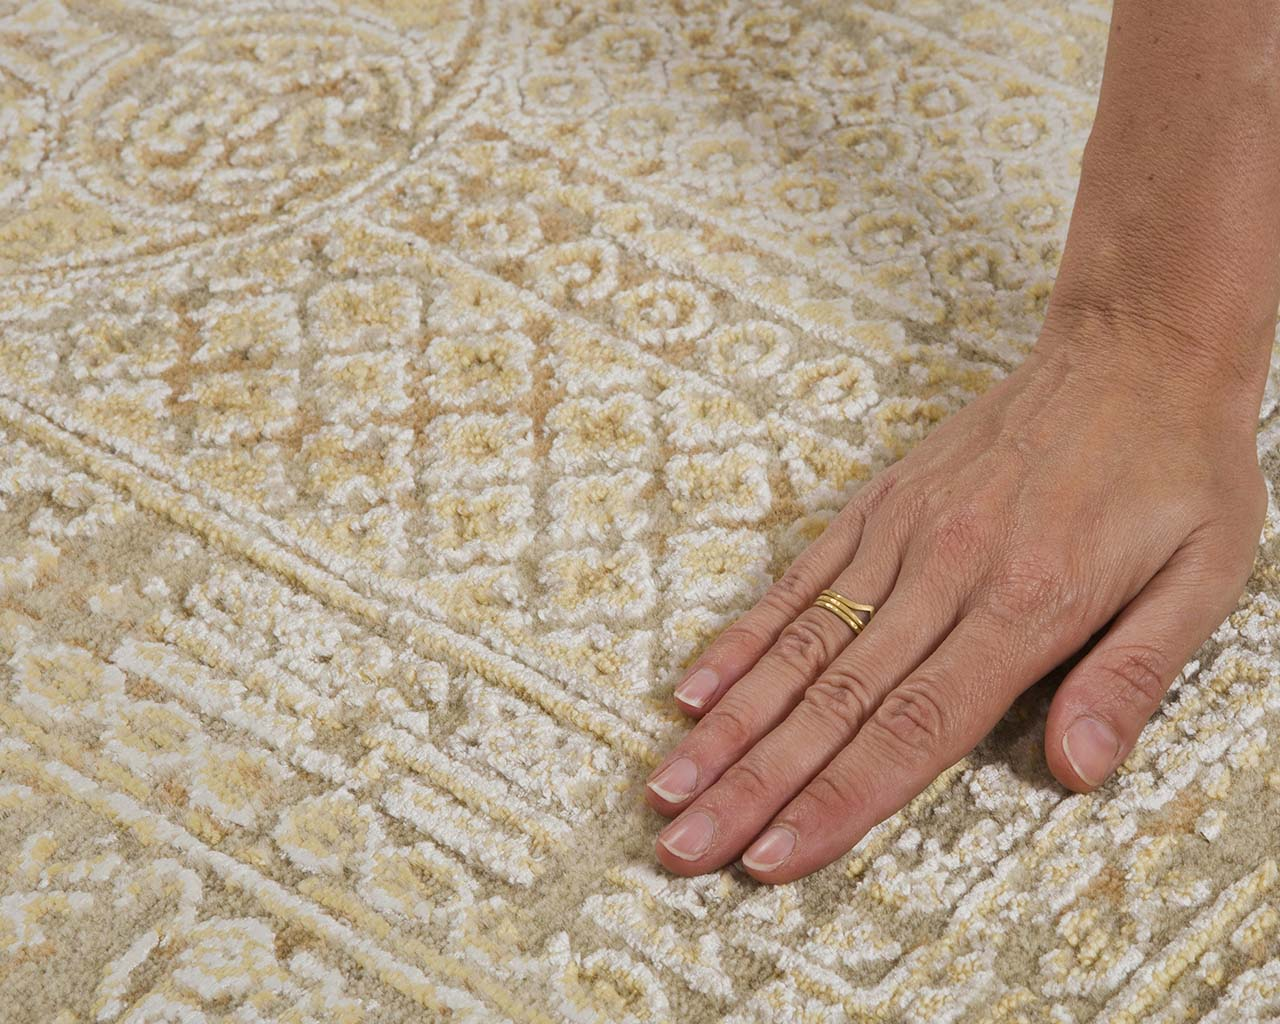 woven alice blue hand with ring contemporary kitchen rugs